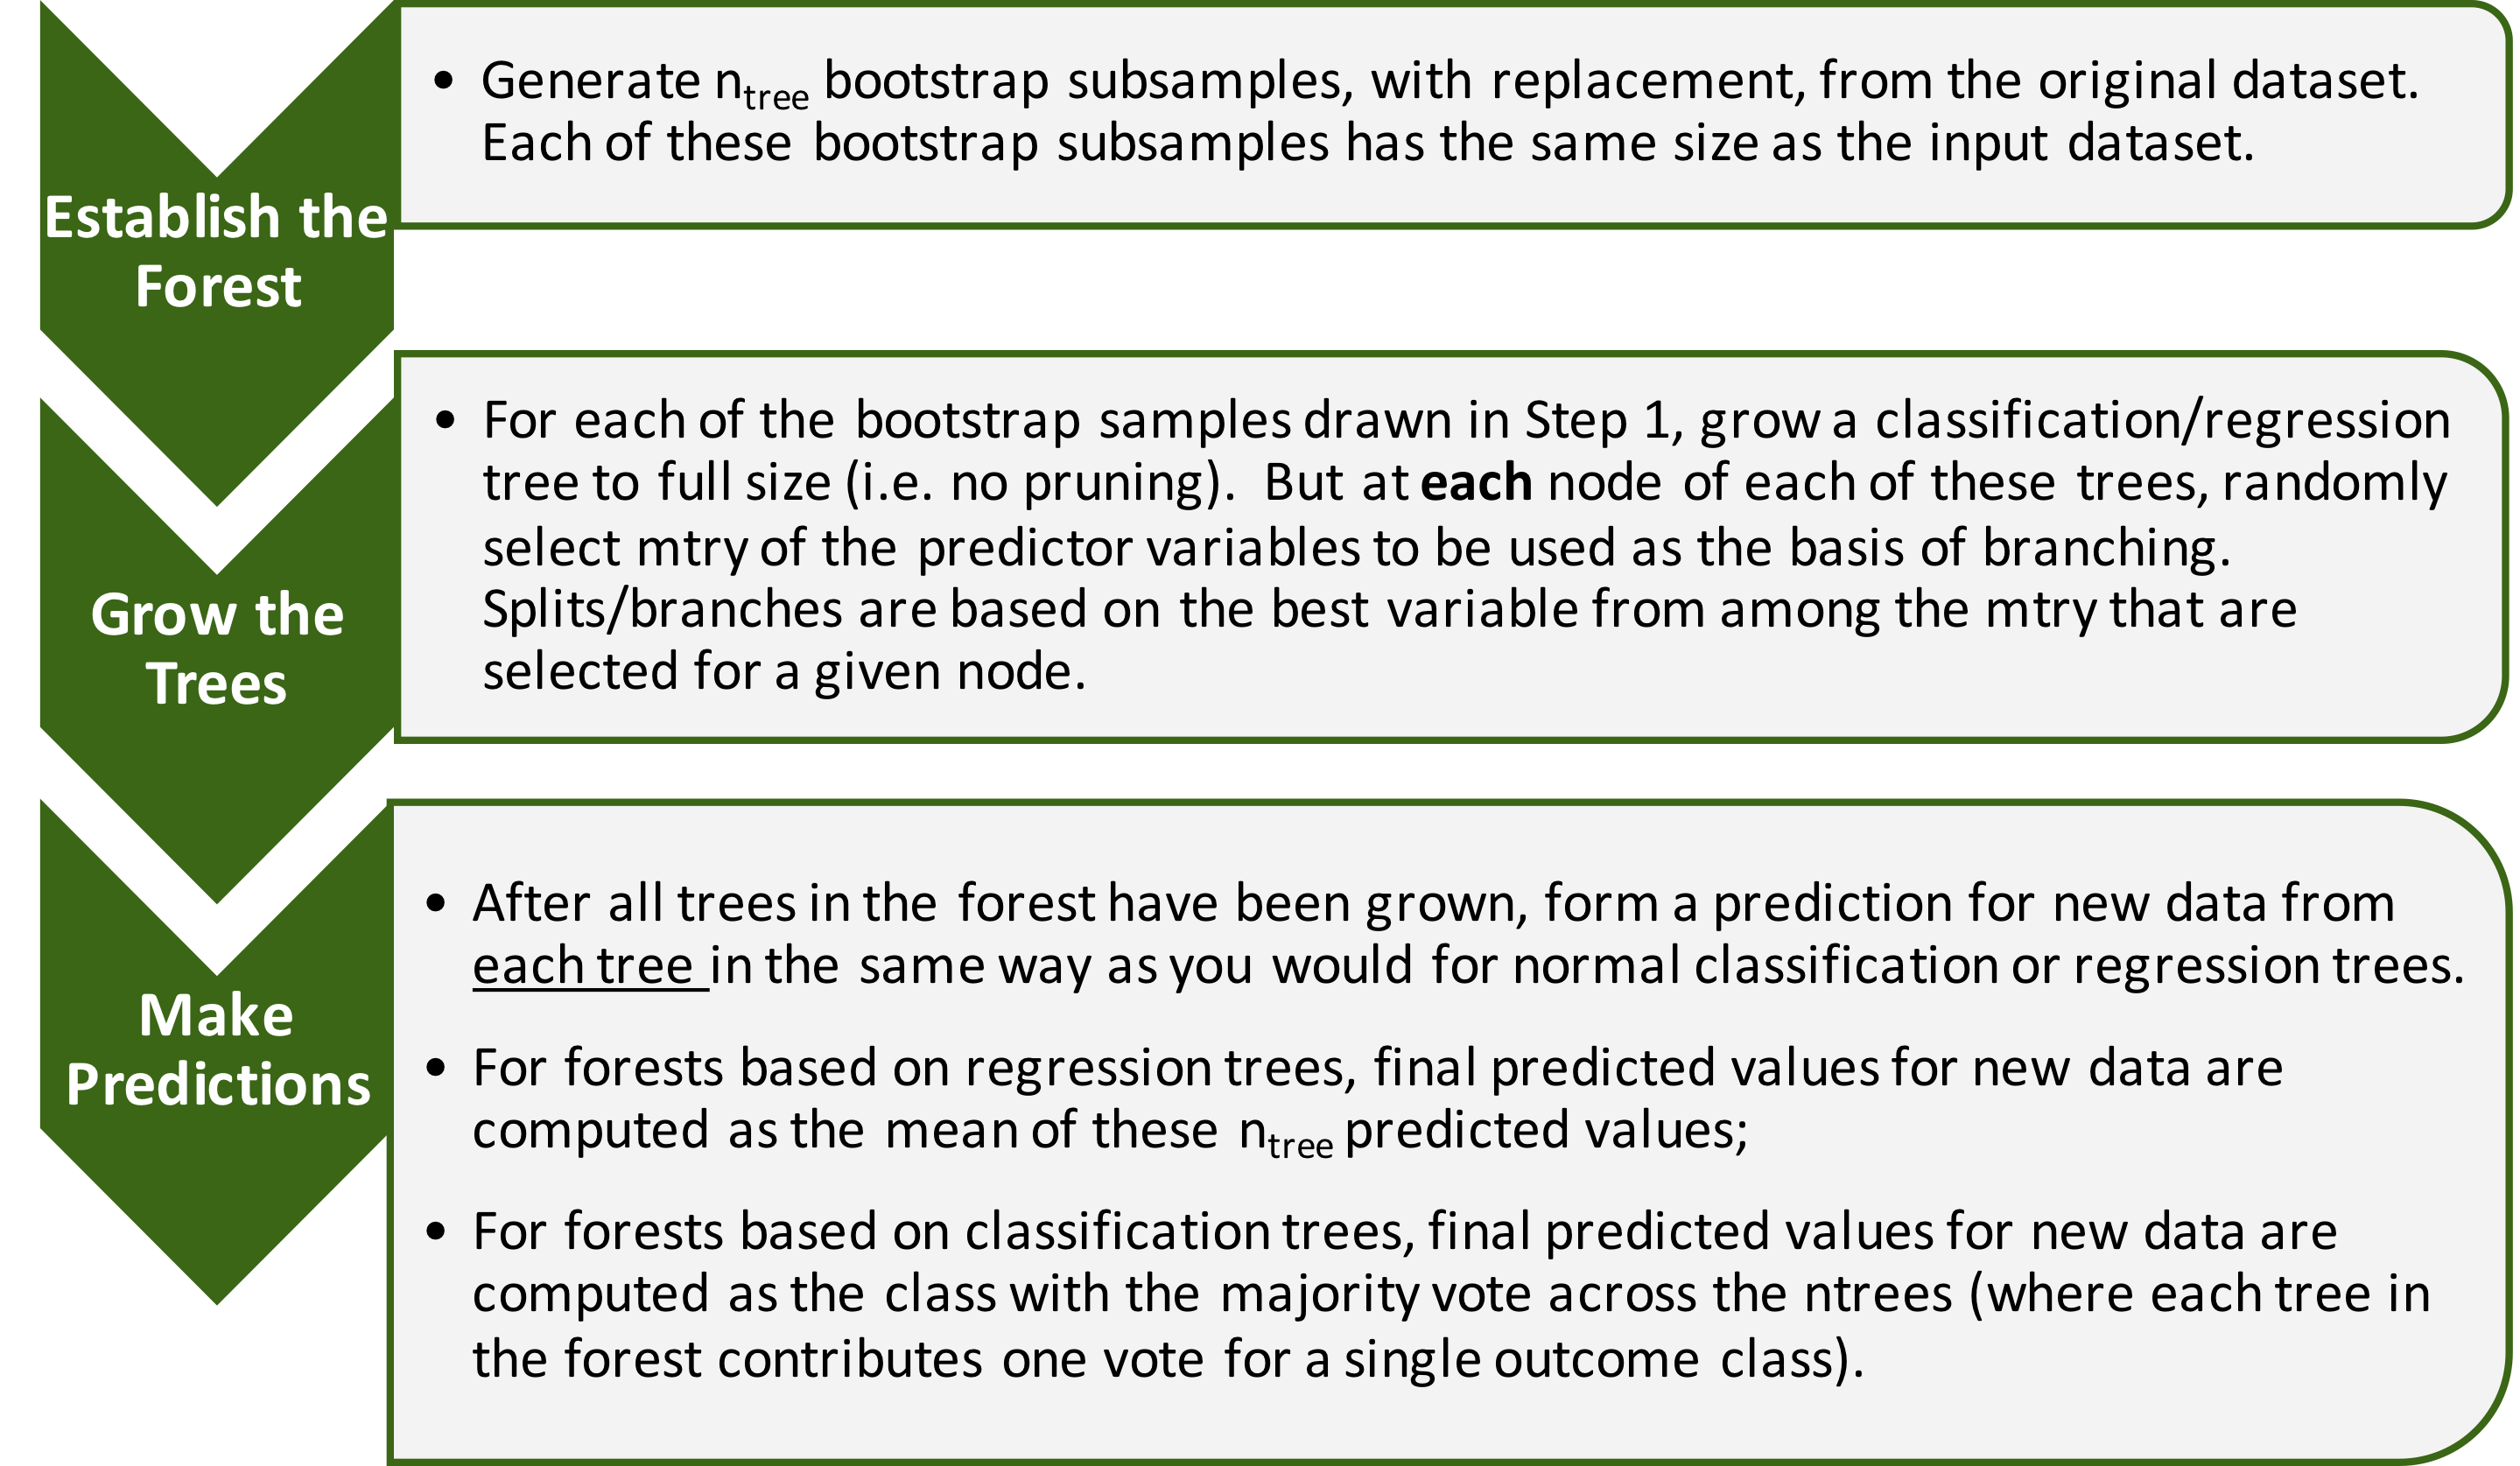 Surveying the Forests and Sampling the Trees: An overview of